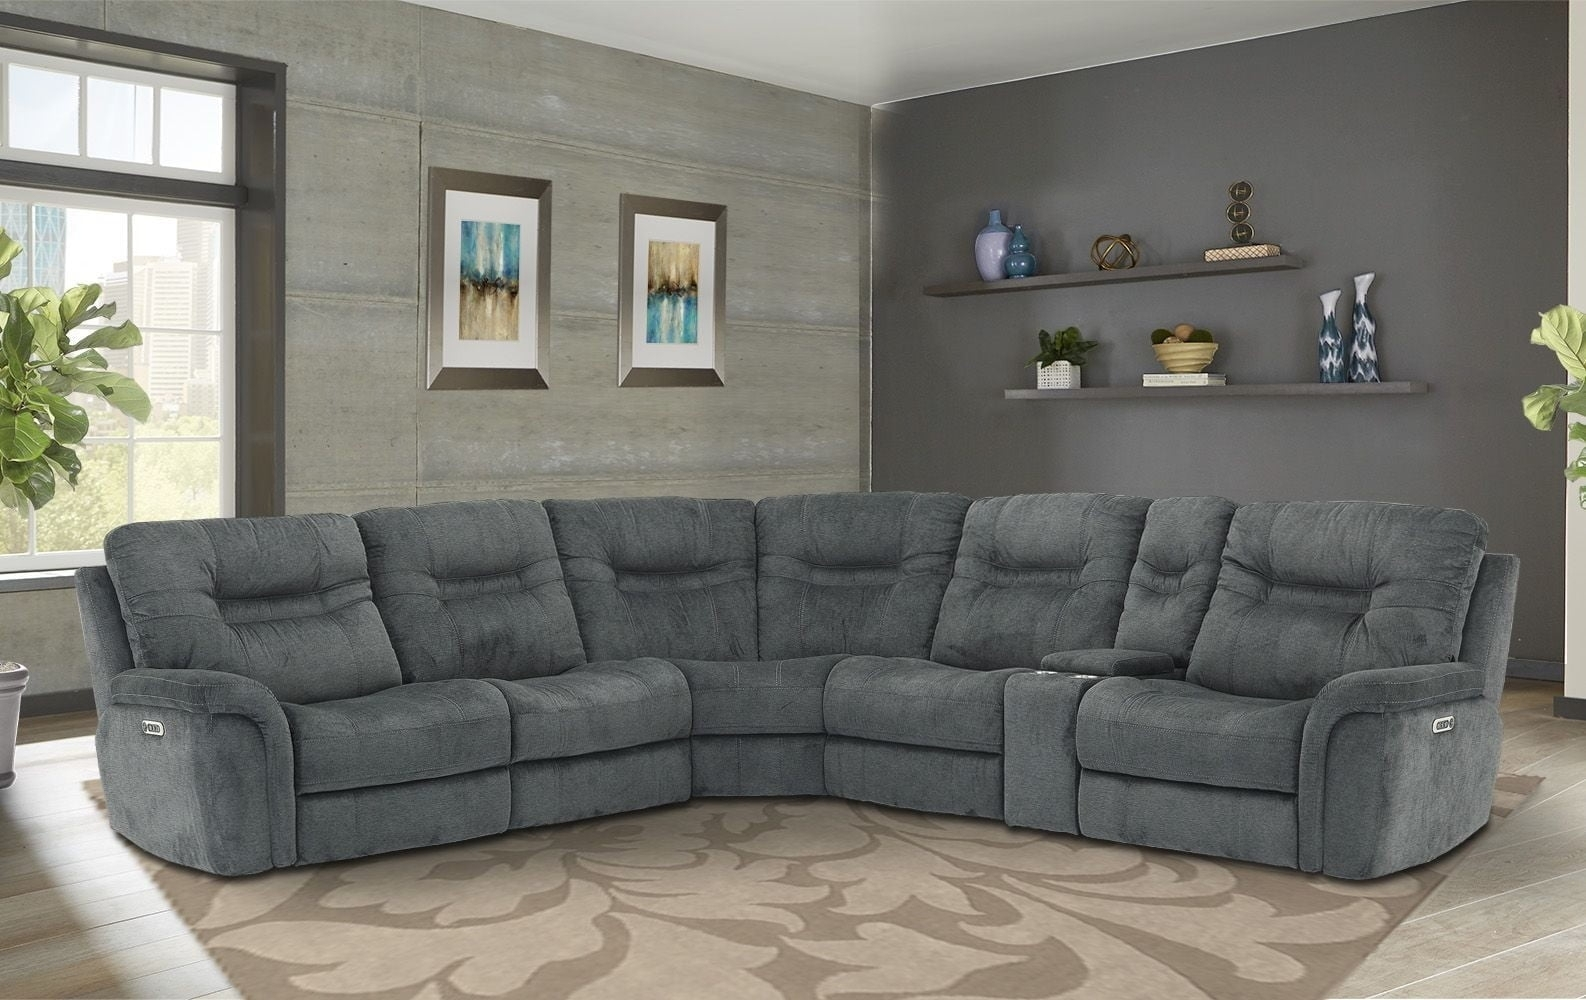 Shelton Polo Power Reclining Sectional With Power Headrest From Inside Denali Charcoal Grey 6 Piece Reclining Sectionals With 2 Power Headrests (Image 24 of 25)